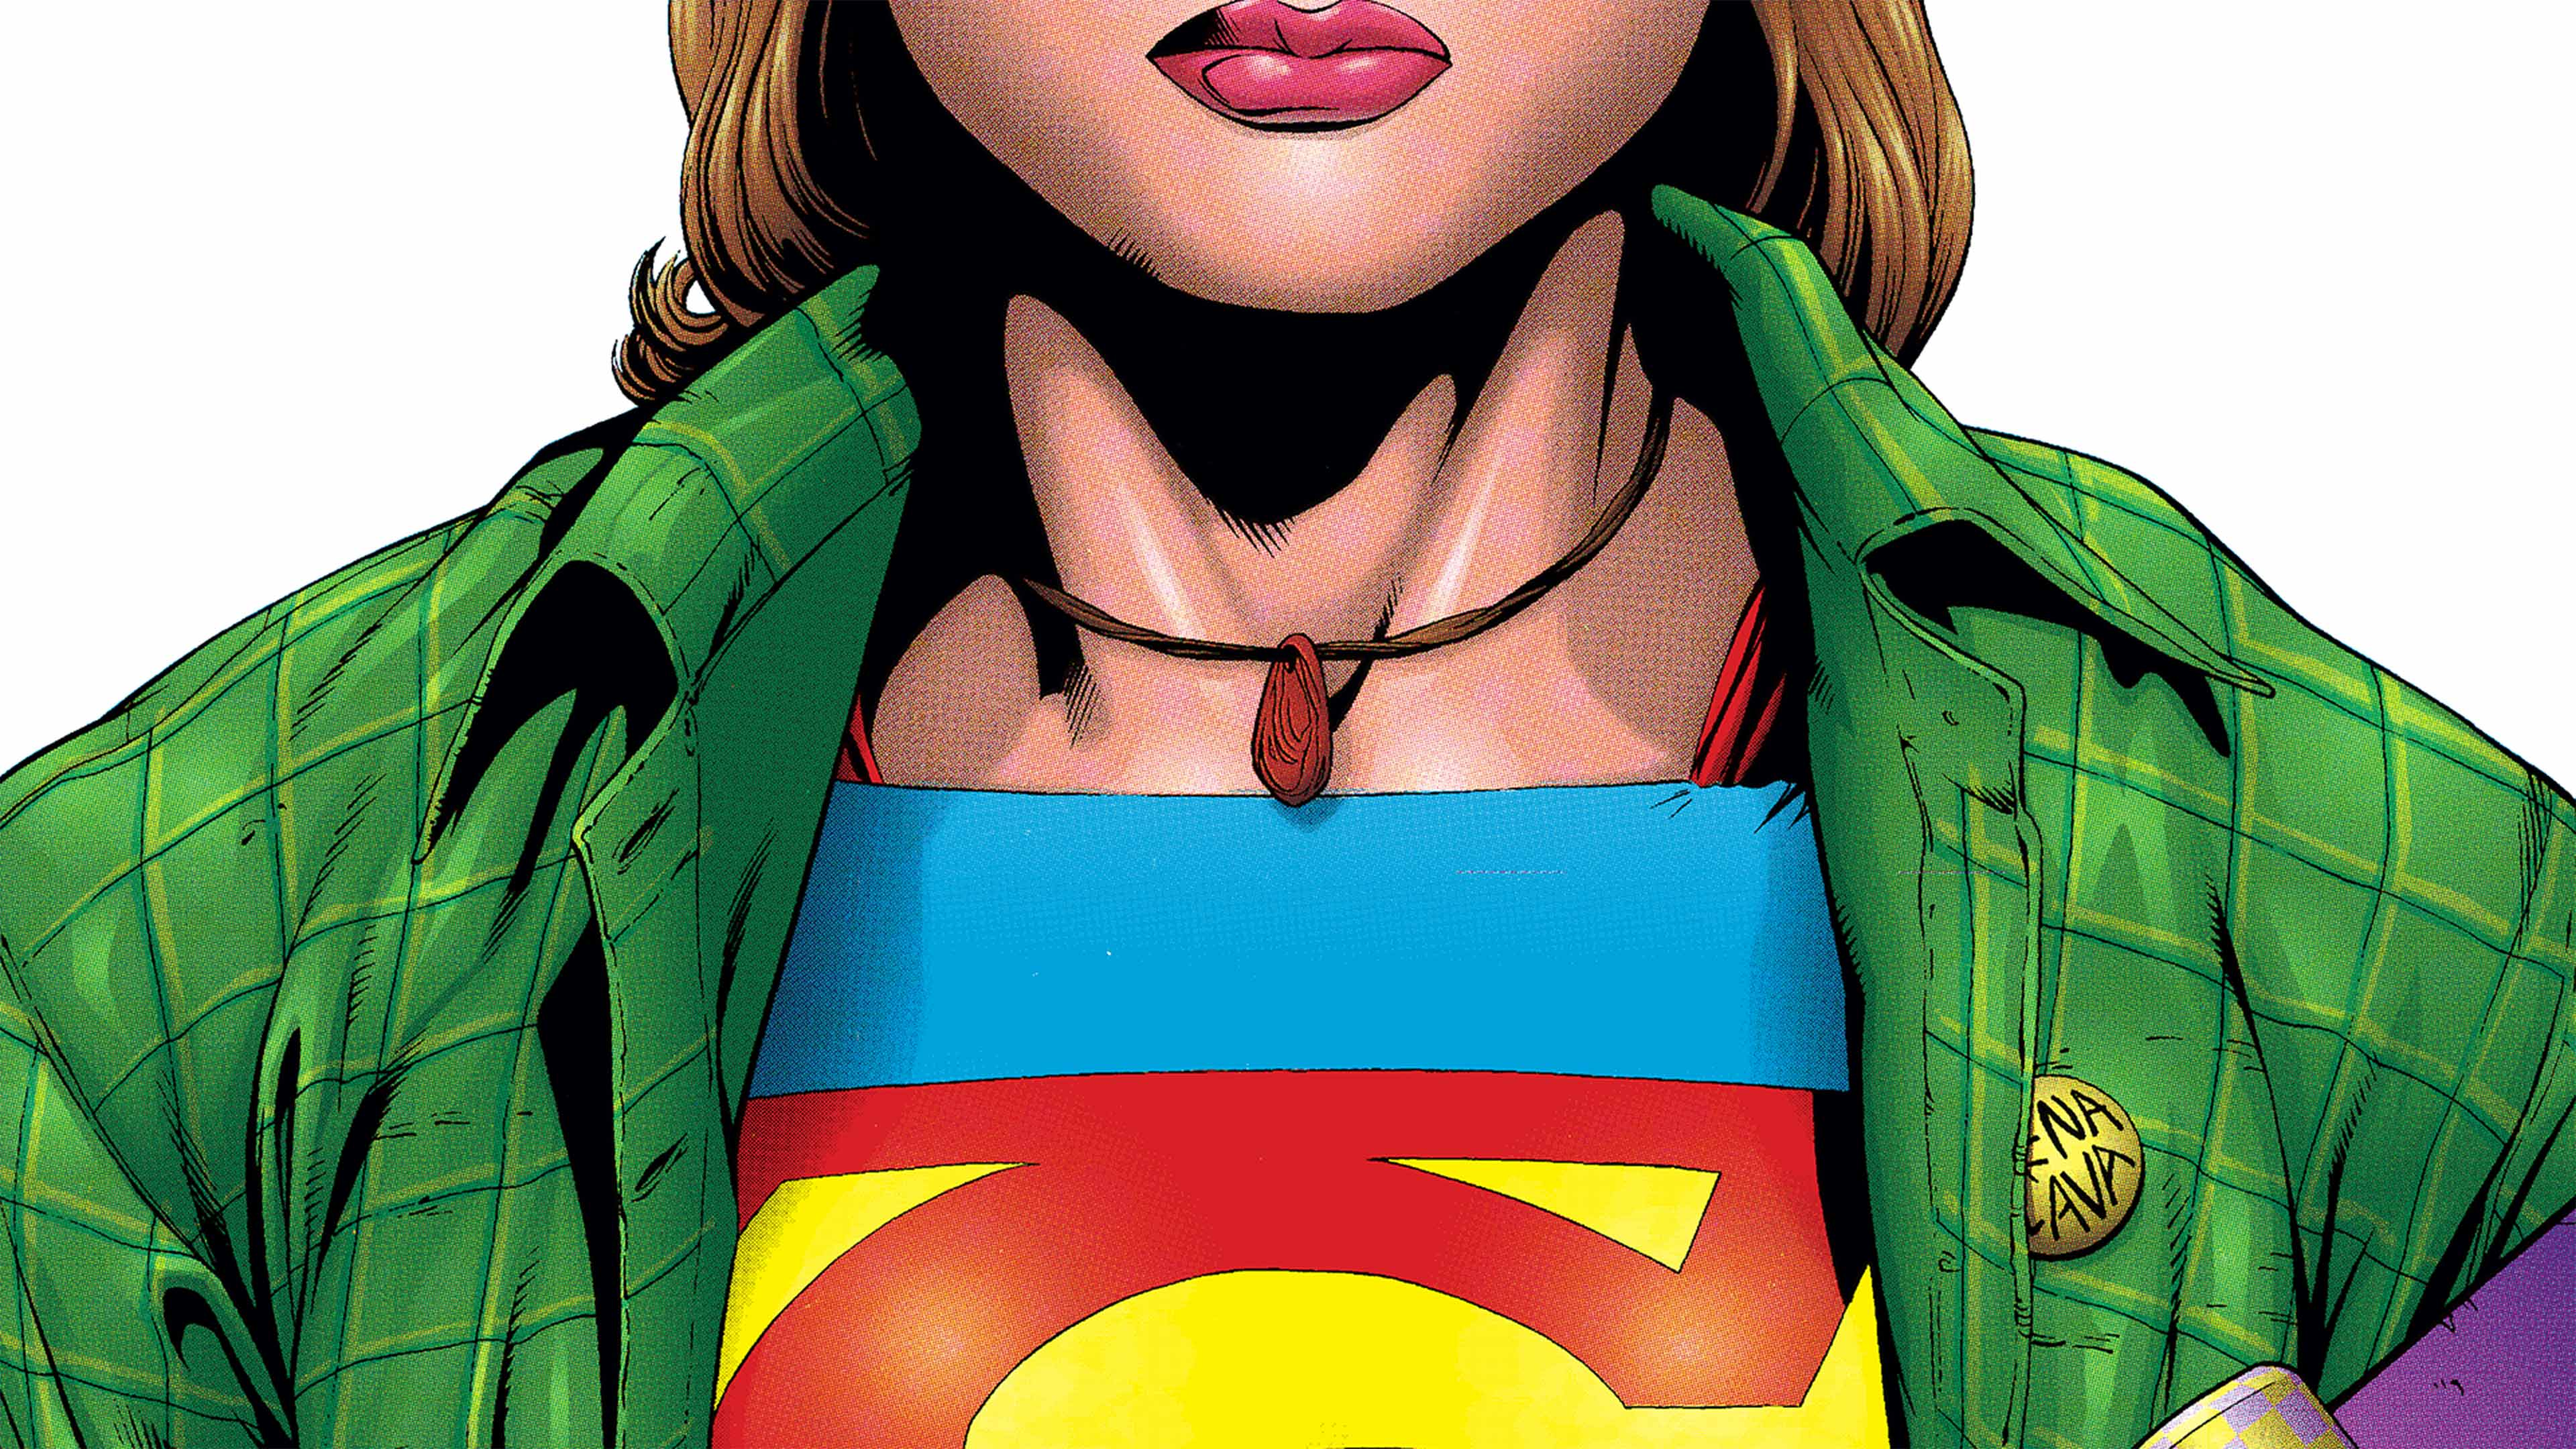 bingethis_supergirl_news_hero-c_v1_200324.jpg